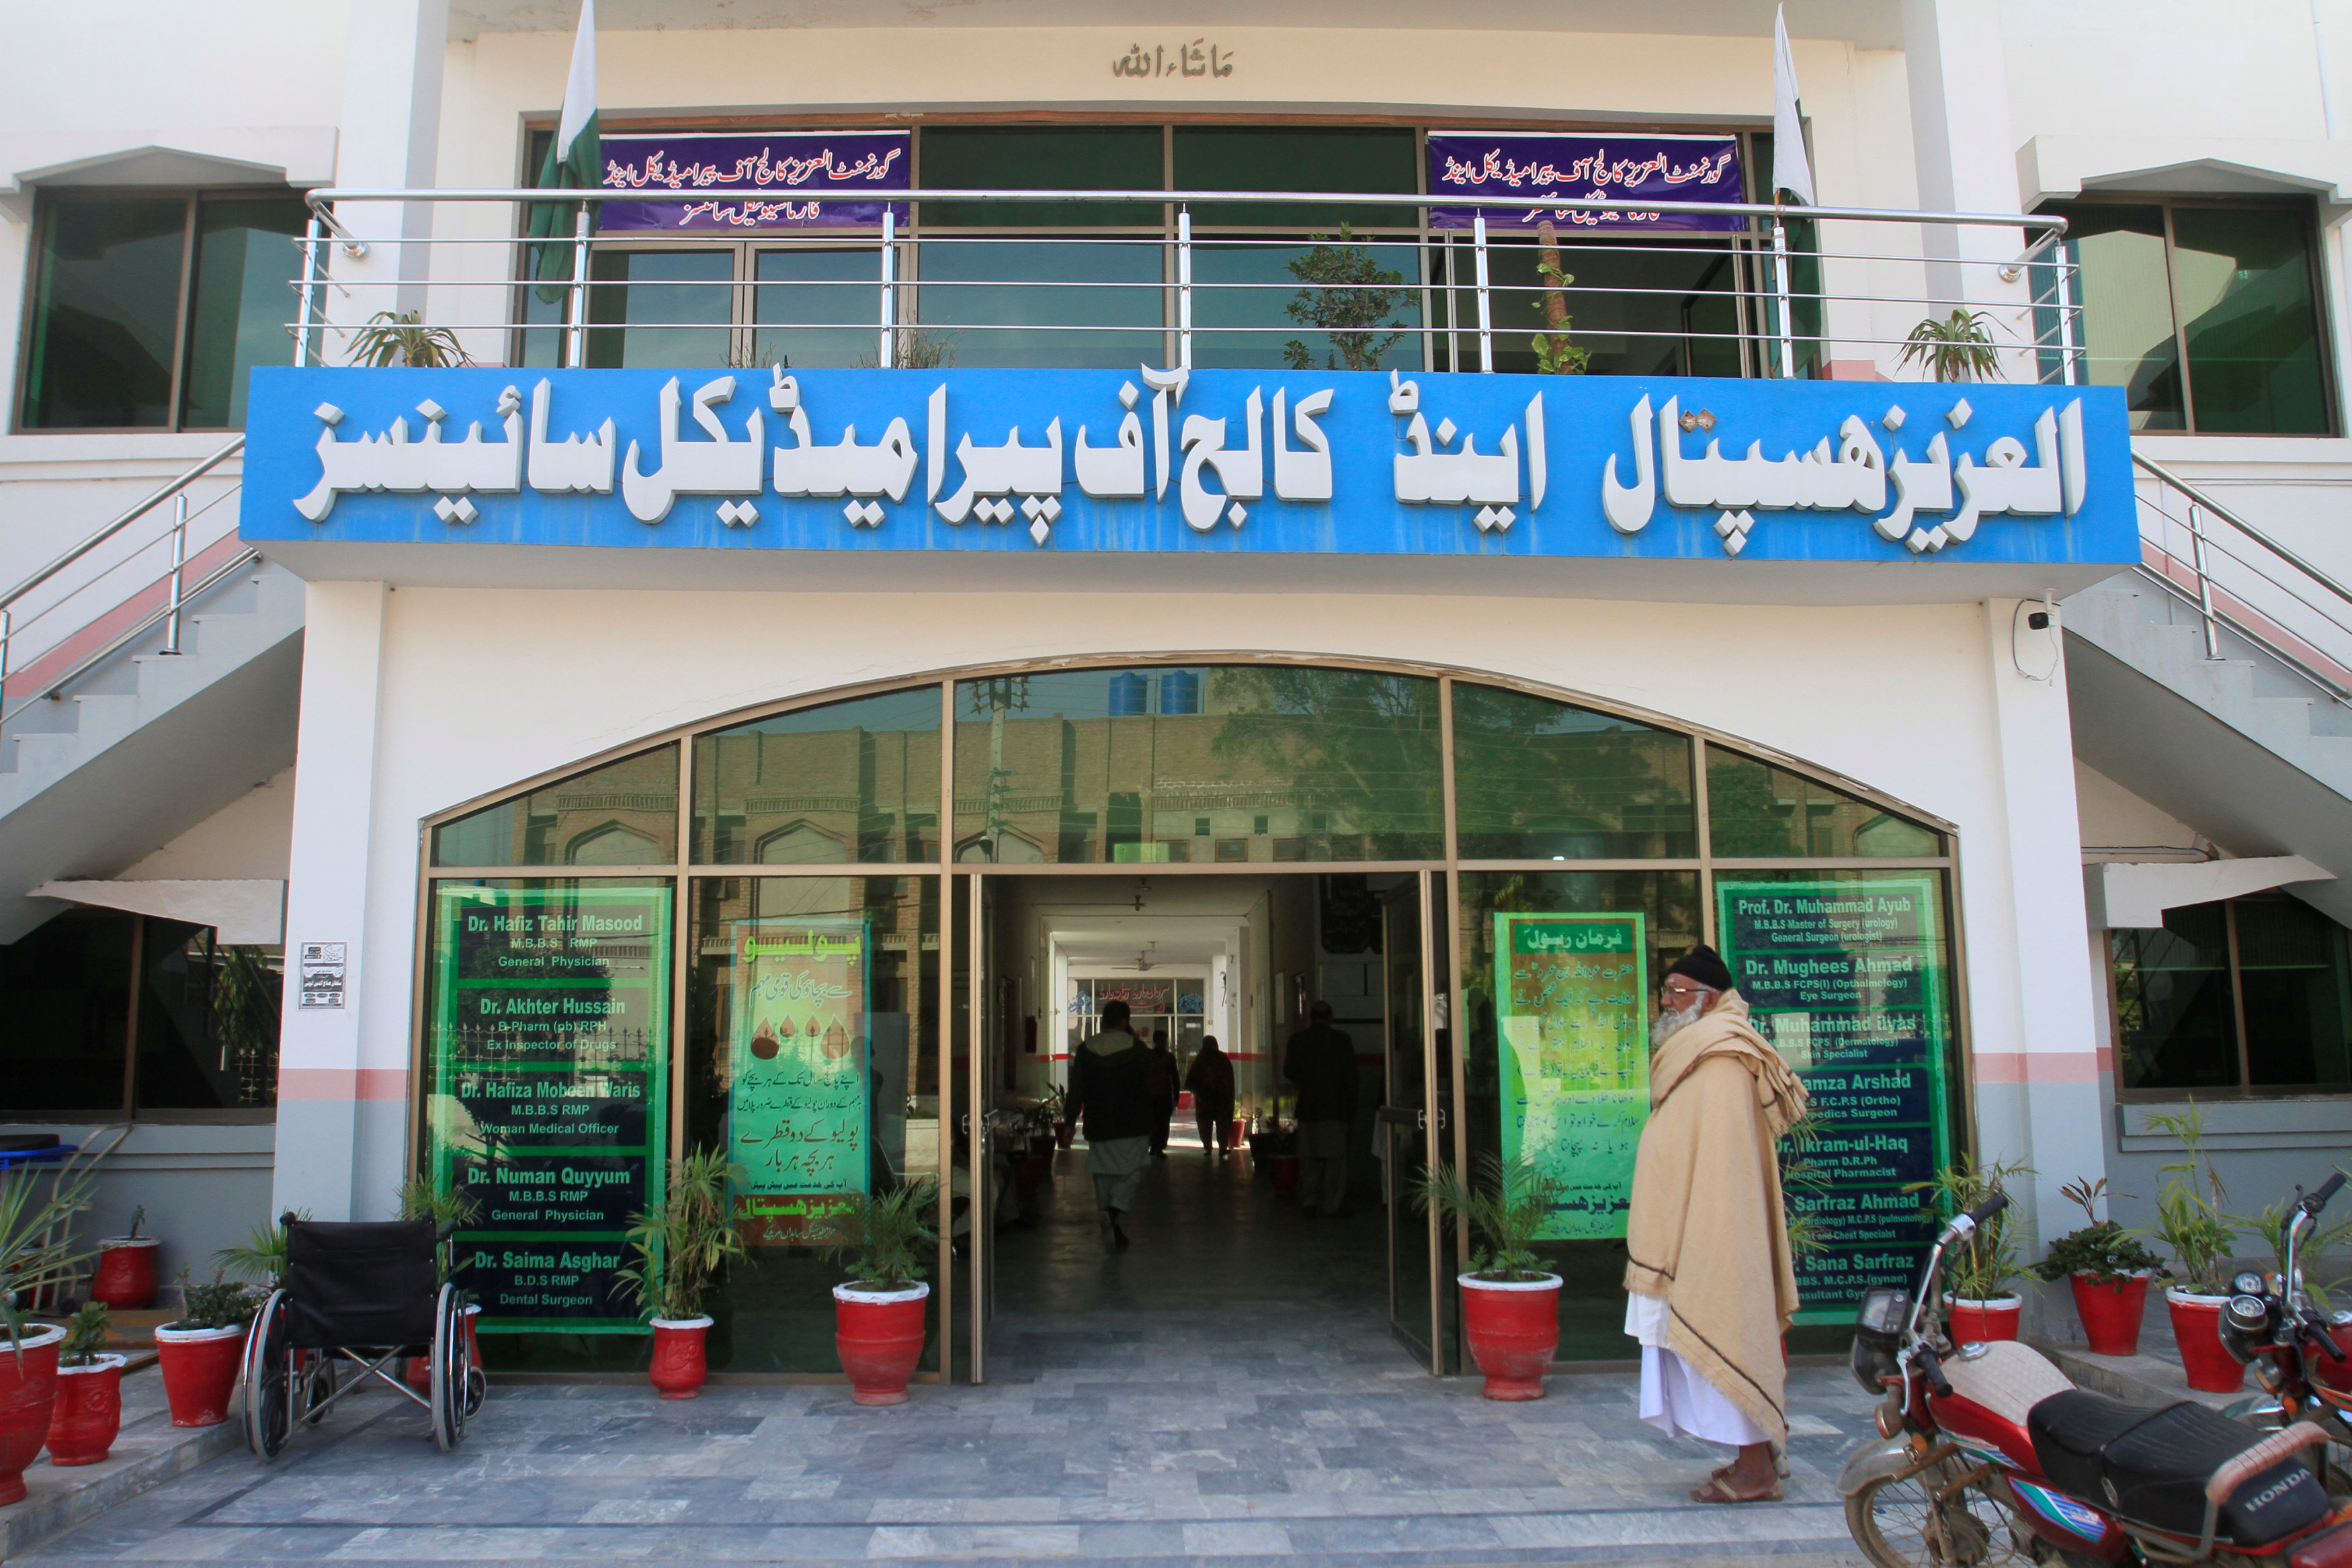 A man stands at the entrance of Government Al-Aziz Hospital, previously known as Al-Aziz Hospital, run by the Islamic charity organisation Jamaat-ud-Dawa (JuD) in Muridke near Lahore, Pakistan February 15, 2018. Picture taken February 15, 2018. REUTERS/Mohsin Raza